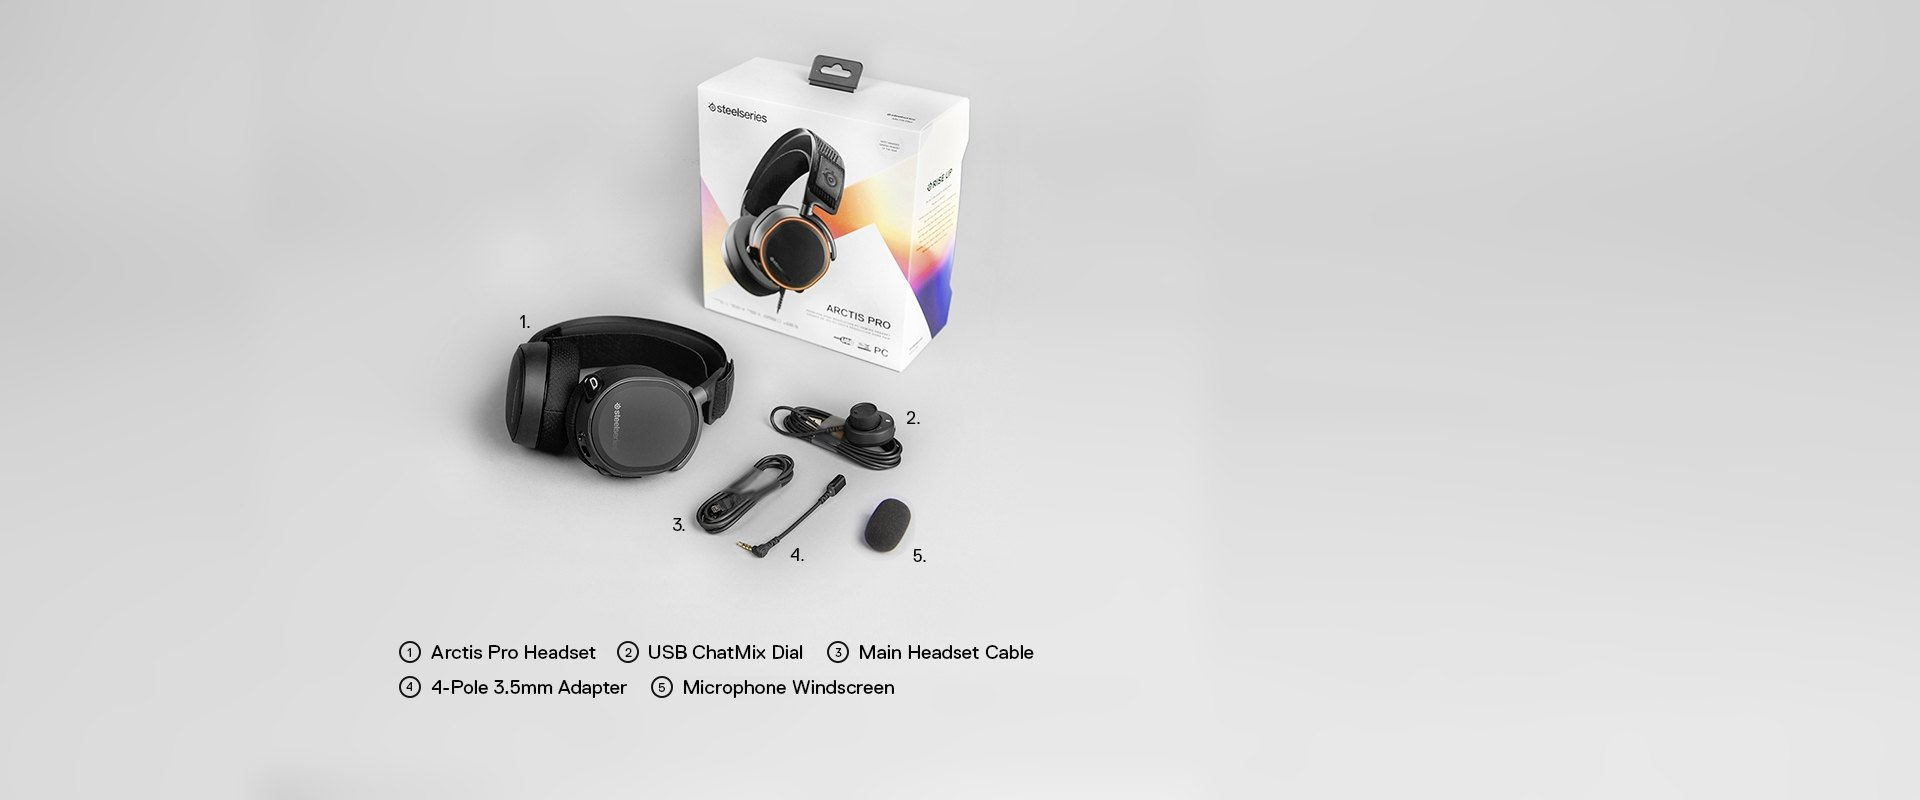 Arctis Pro headset exterior packaging shown with box contents displayed. 1. Arctis Pro Headset 2. USB ChatMix Dial 3. Main Headset Cable 4. 4-pole 3.5mm Adapter 5. Abafador de ventos para microfone